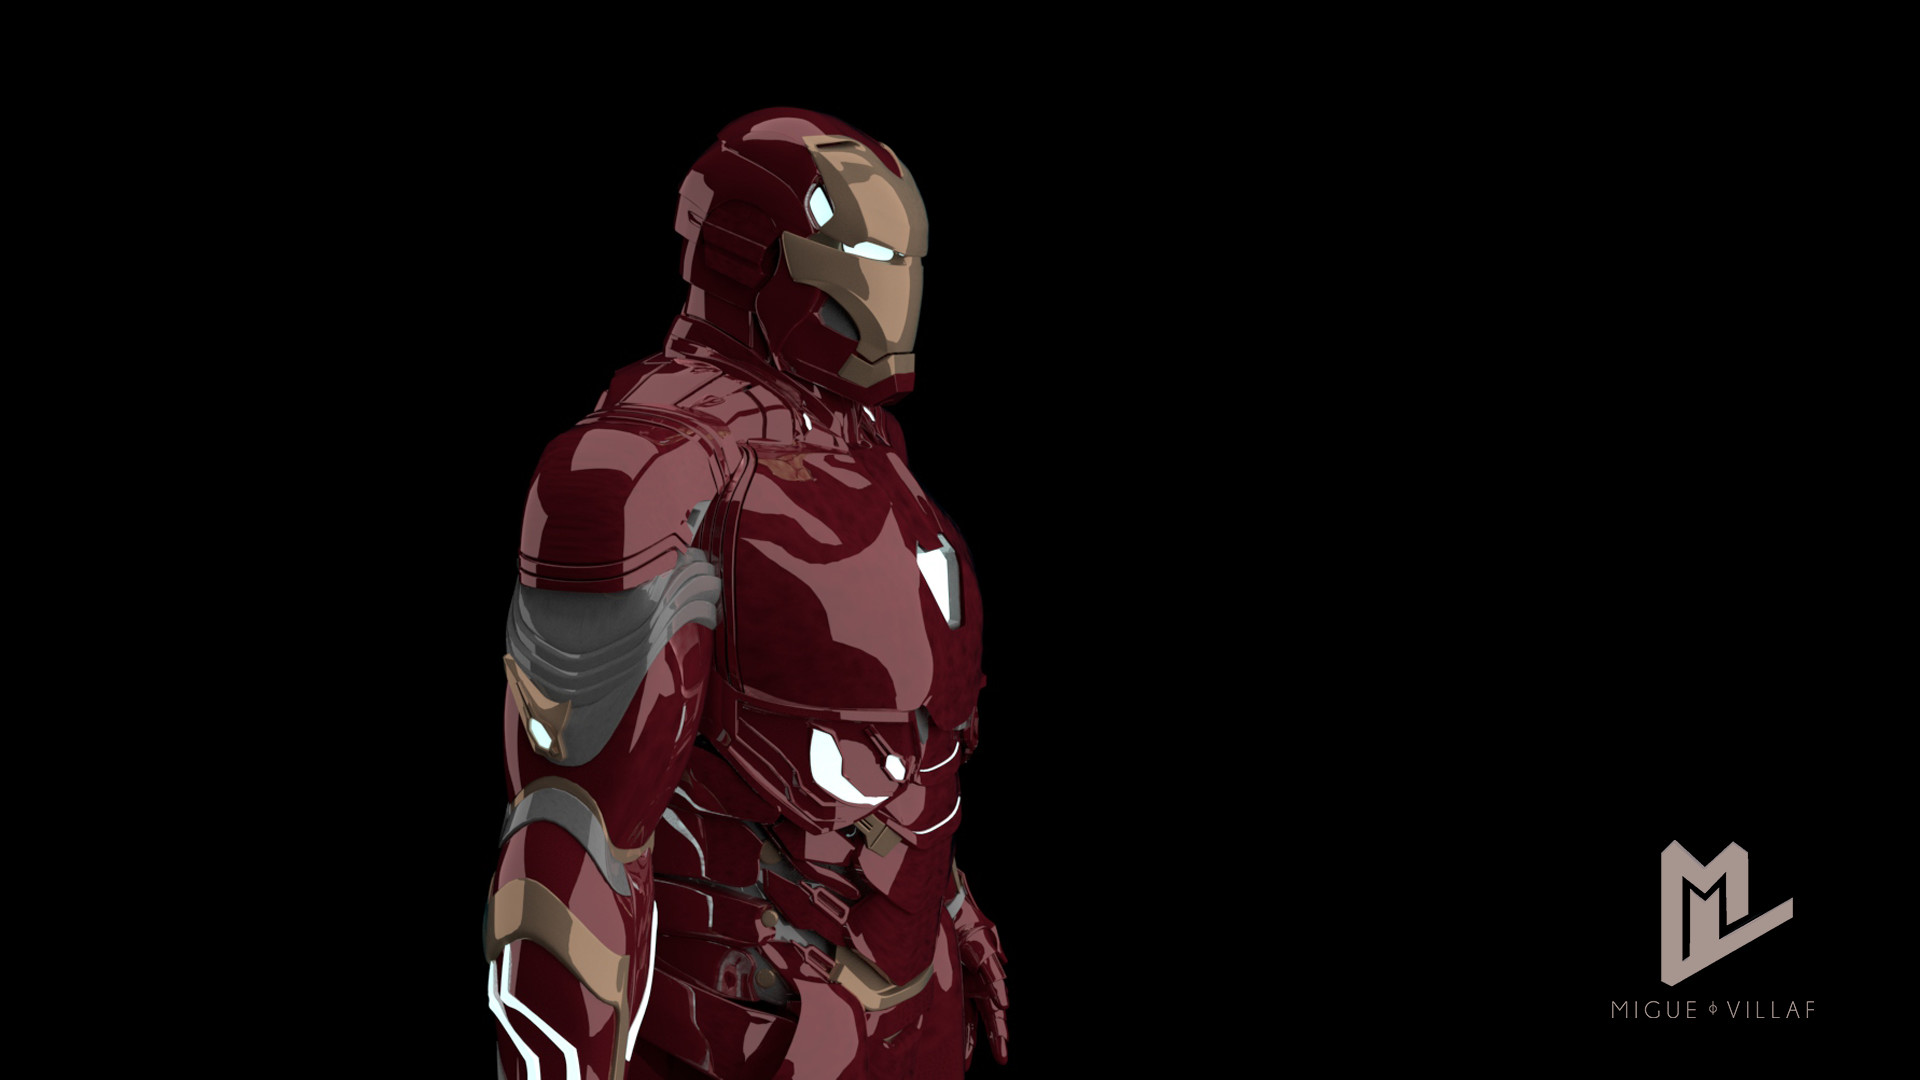 ironman infinity war suit, hd movies, 4k wallpapers, images